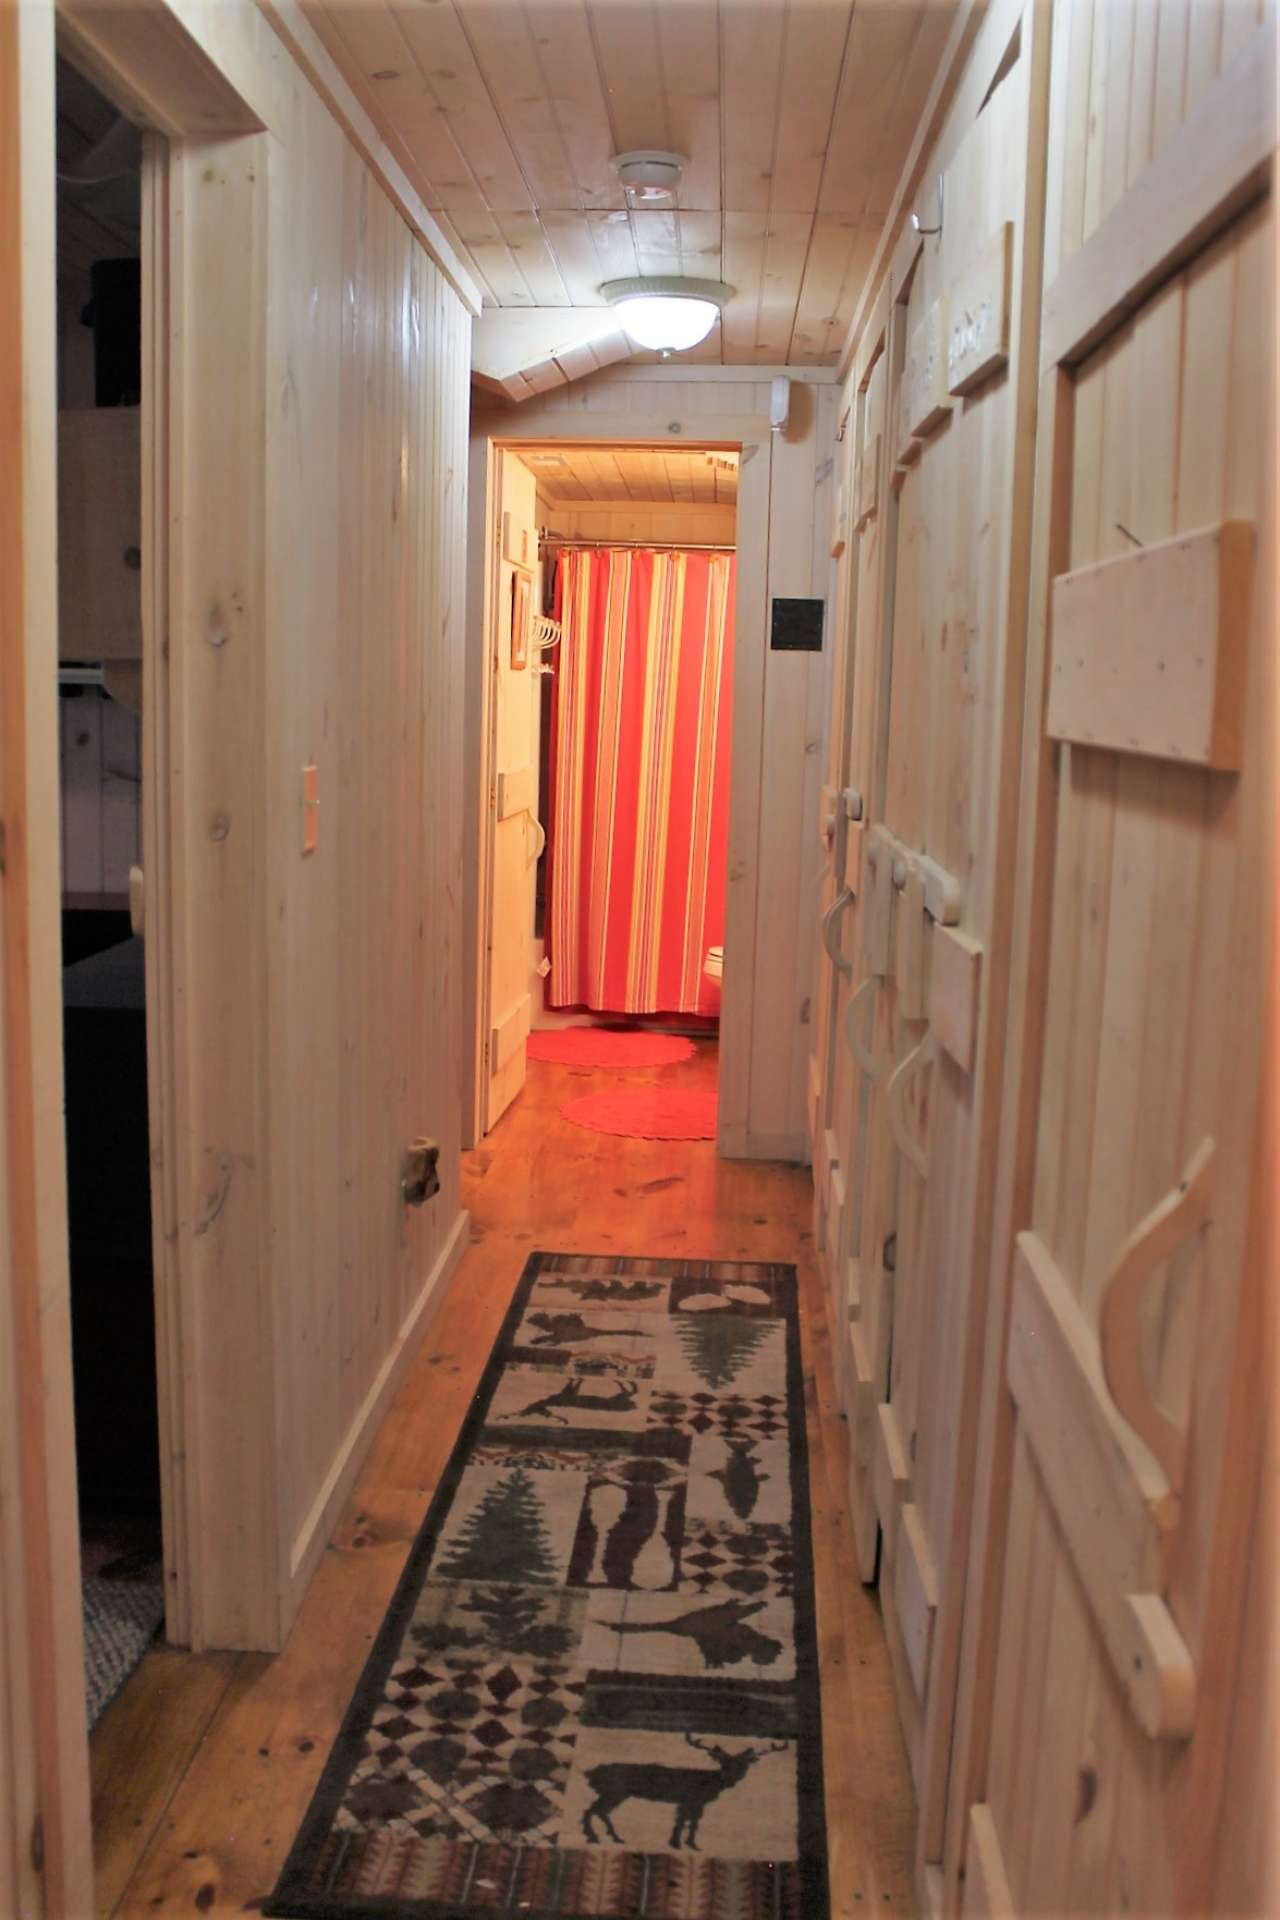 Lower level hallway has a wall of multiple closets providing abundant storage as well as a full size washer and dryer.